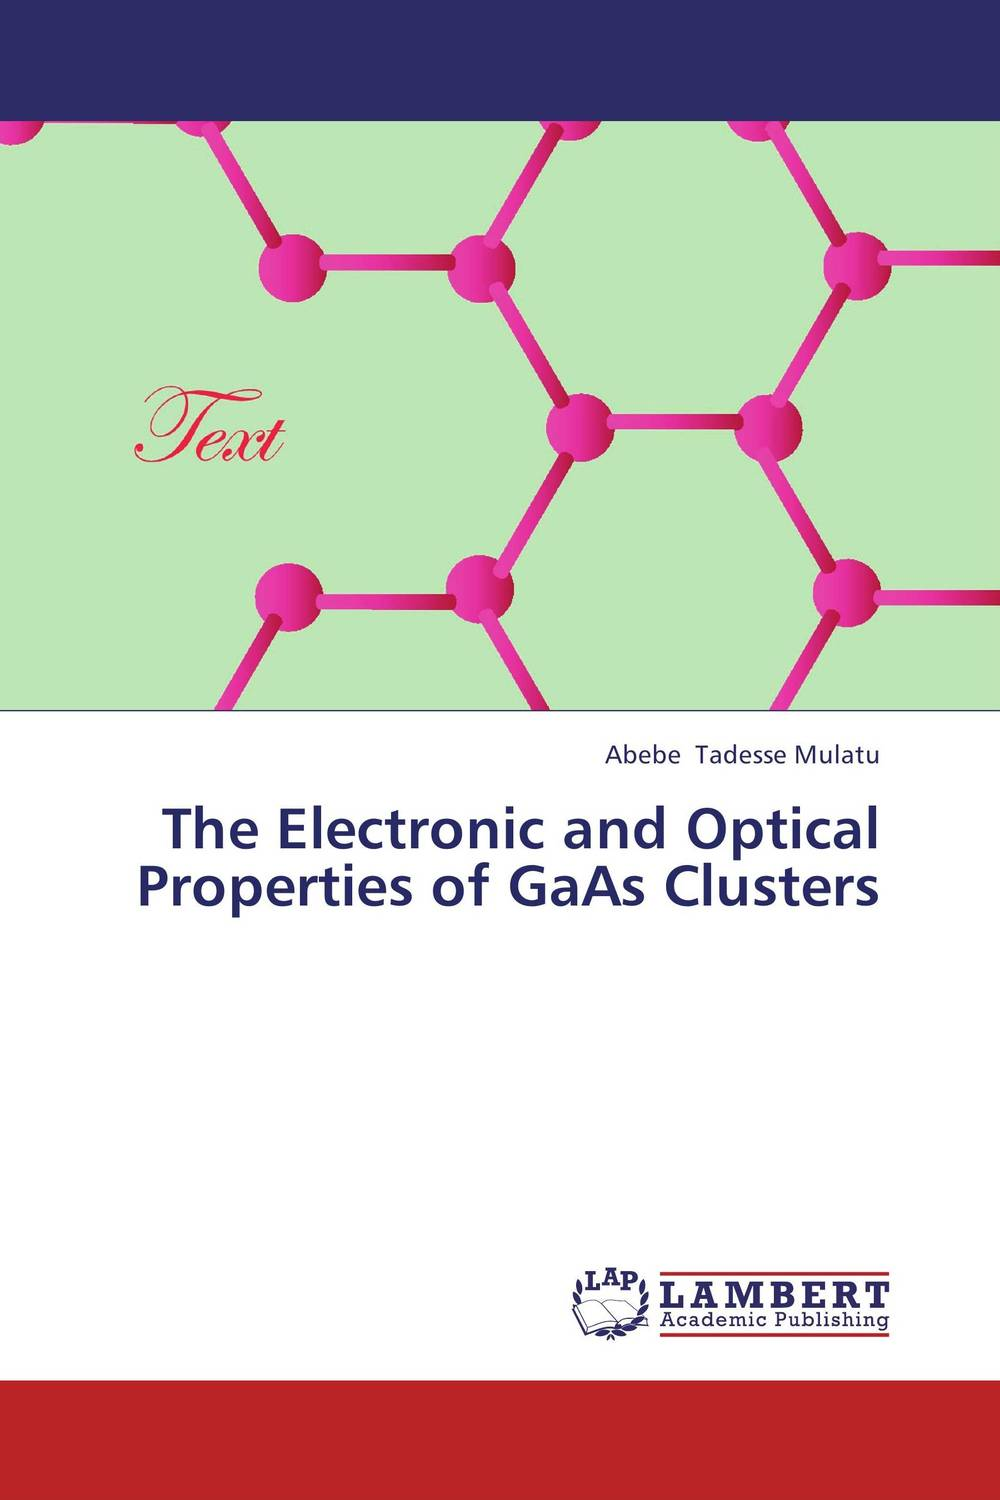 The Electronic and Optical Properties of GaAs Clusters optical and electronic properties of diamondoids